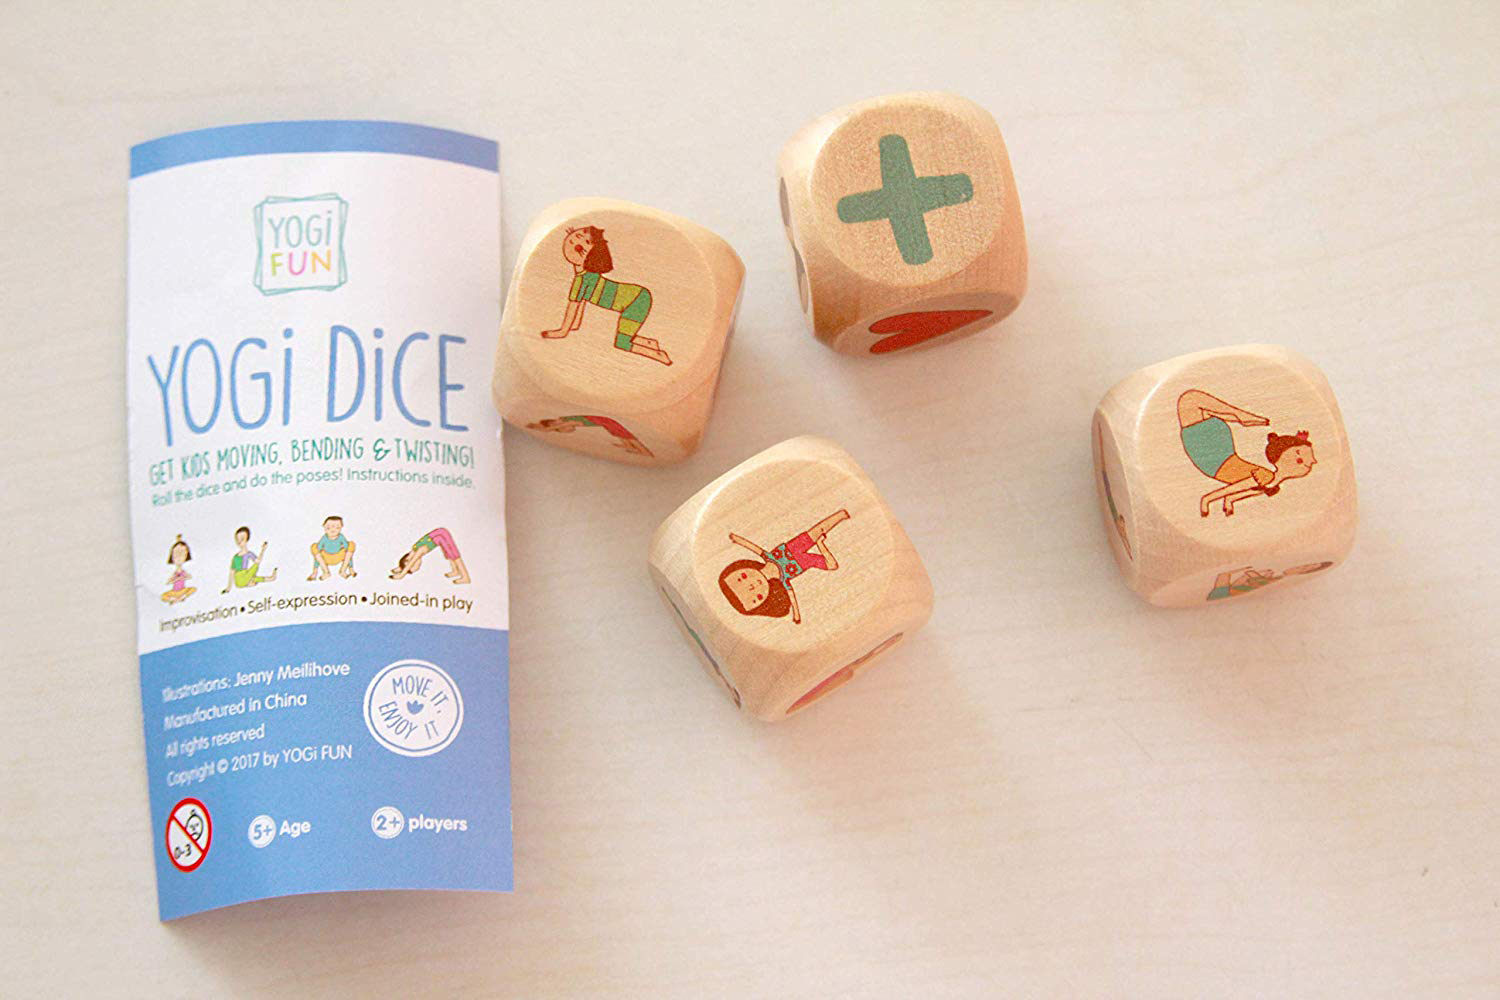 Make it a game! Roll the Yogi Dice to pick a pose. My little one loves to stack the blocks and roll them on his mat. Plus, when I start to show him the pose, he does it along with me!